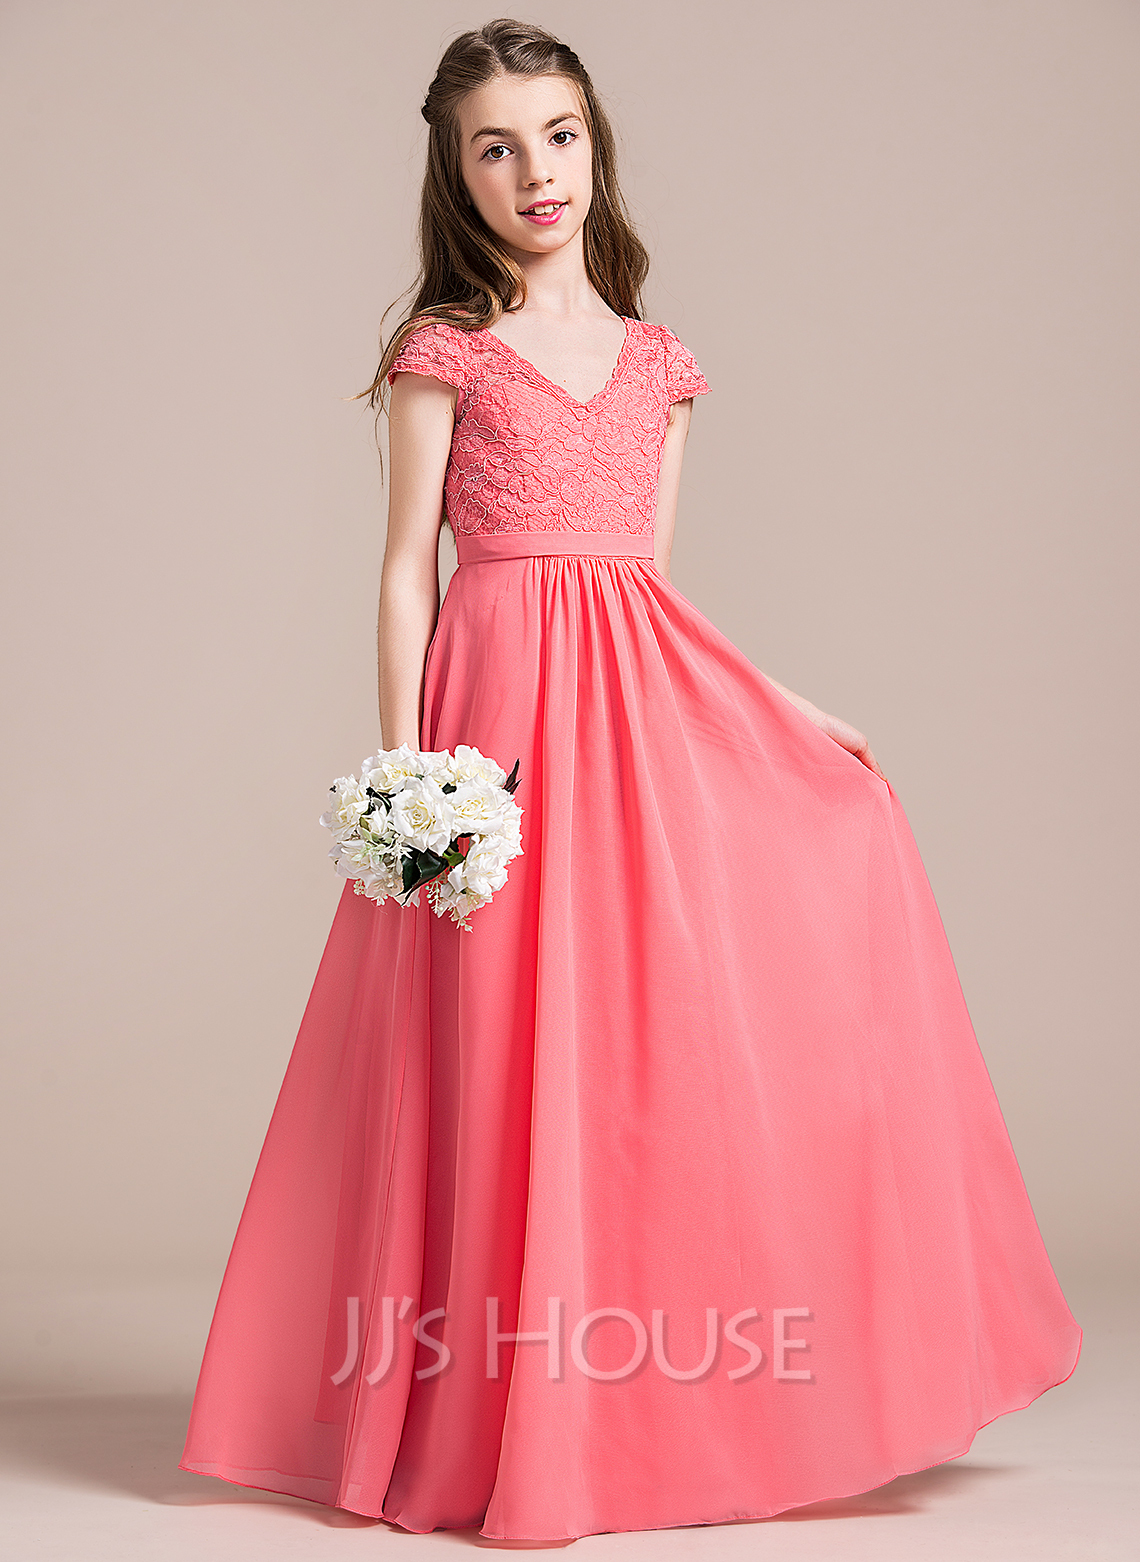 A-Line/Princess Floor-length Flower Girl Dress - Chiffon/Lace Sleeveless V-neck